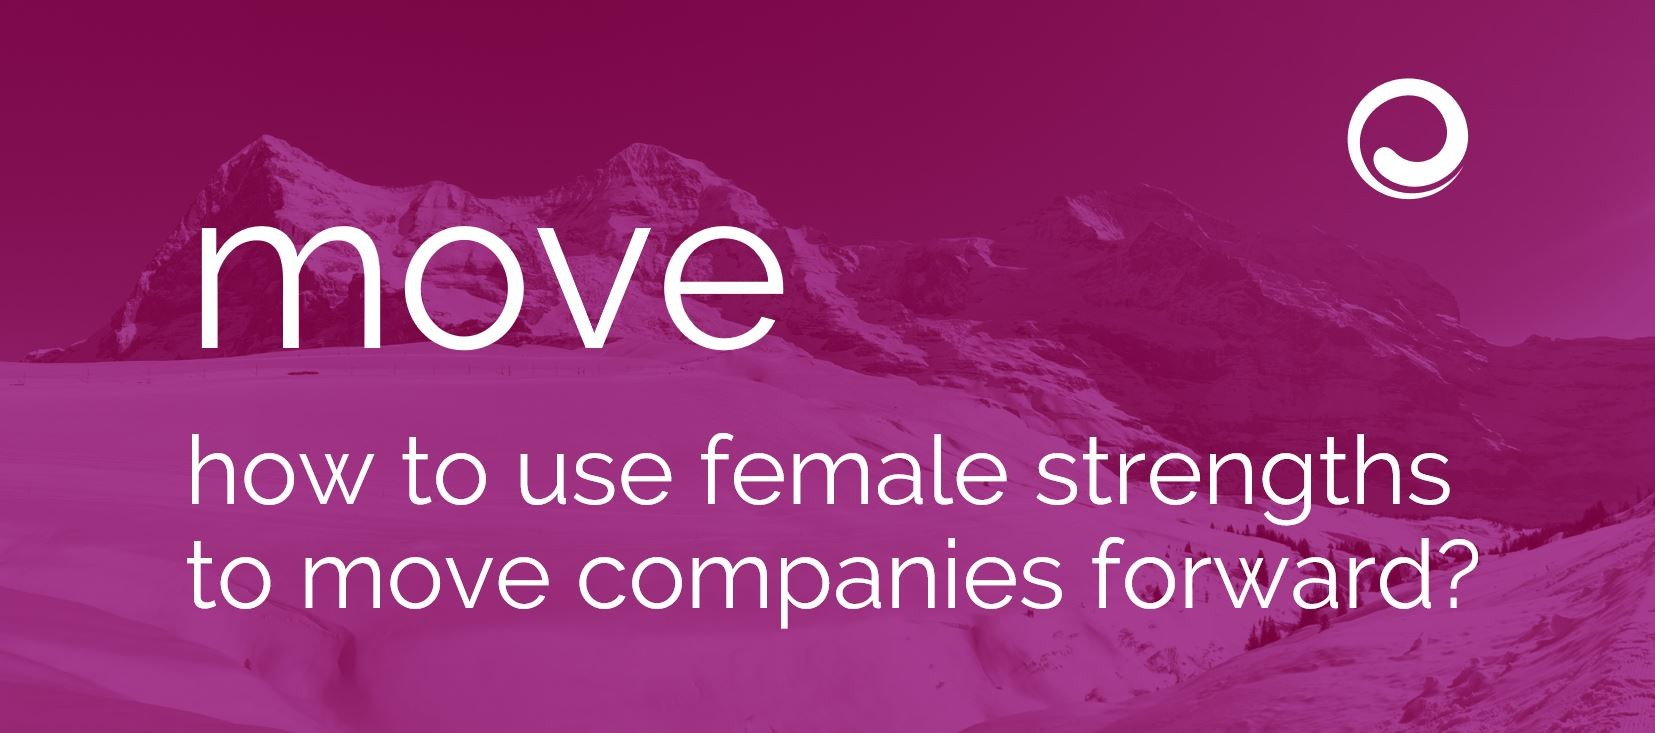 Magazin - move - use female strengths 09-2021